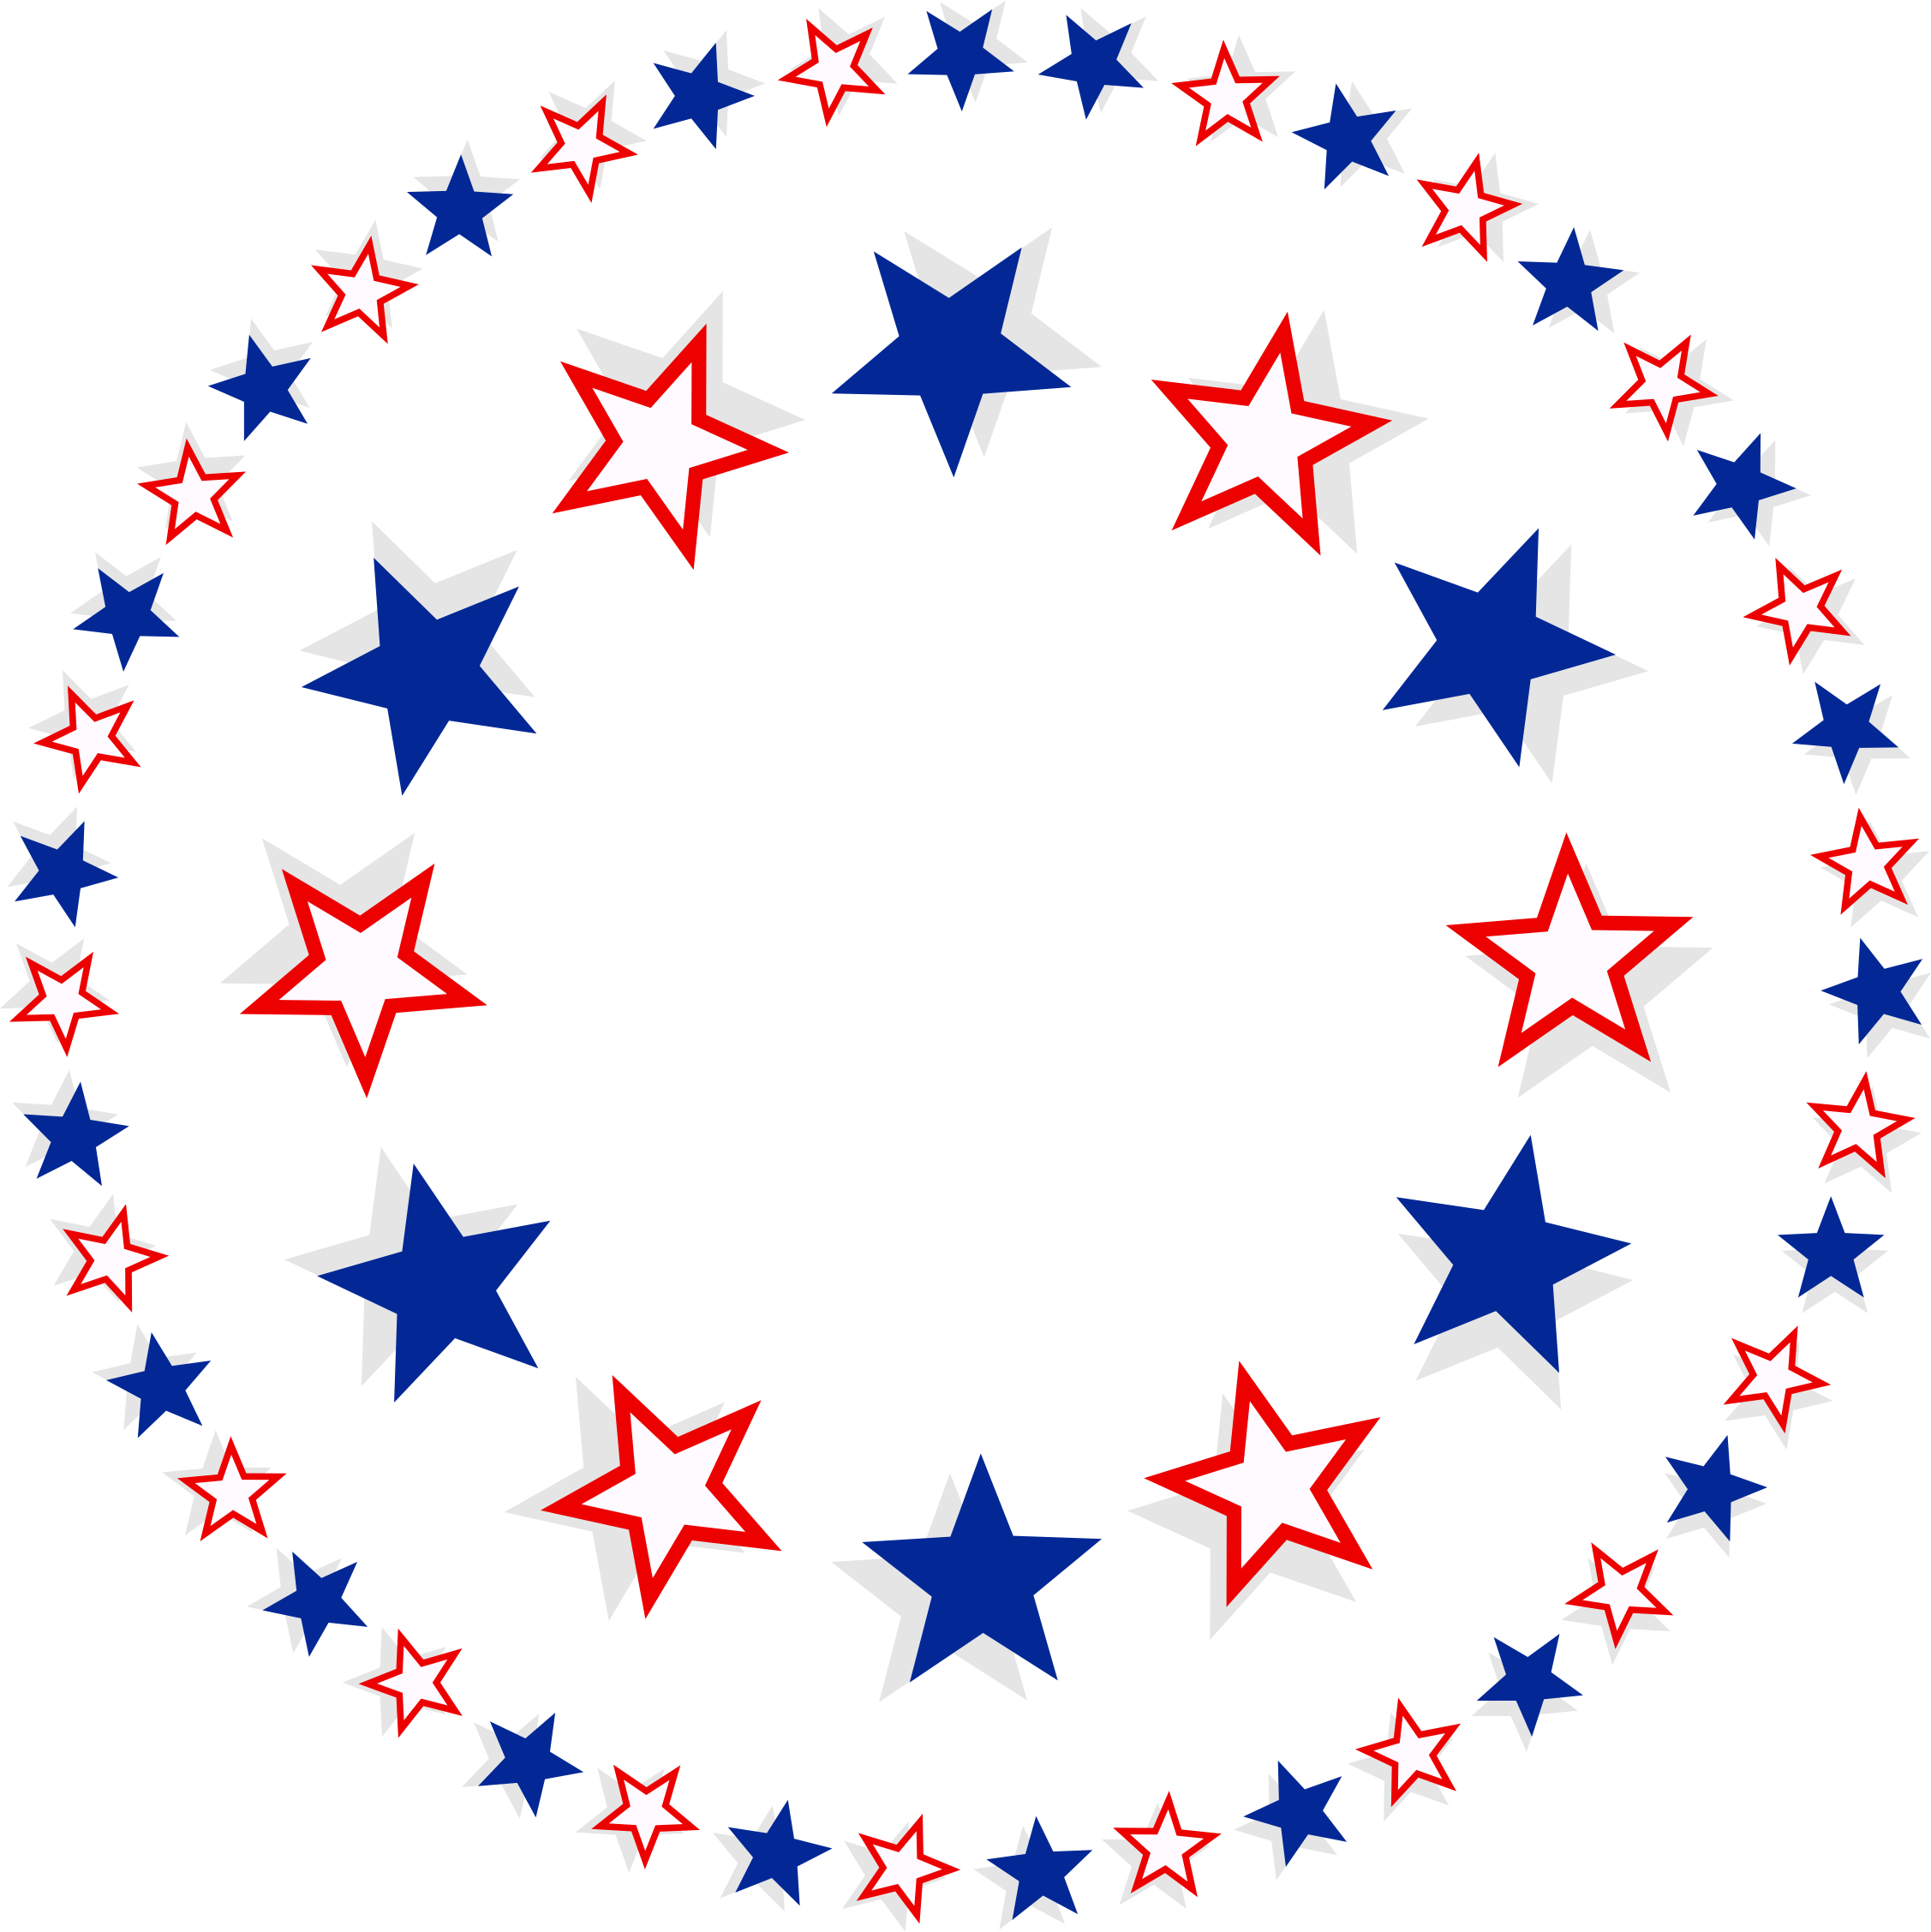 microsoft clipart 4th of july - photo #46